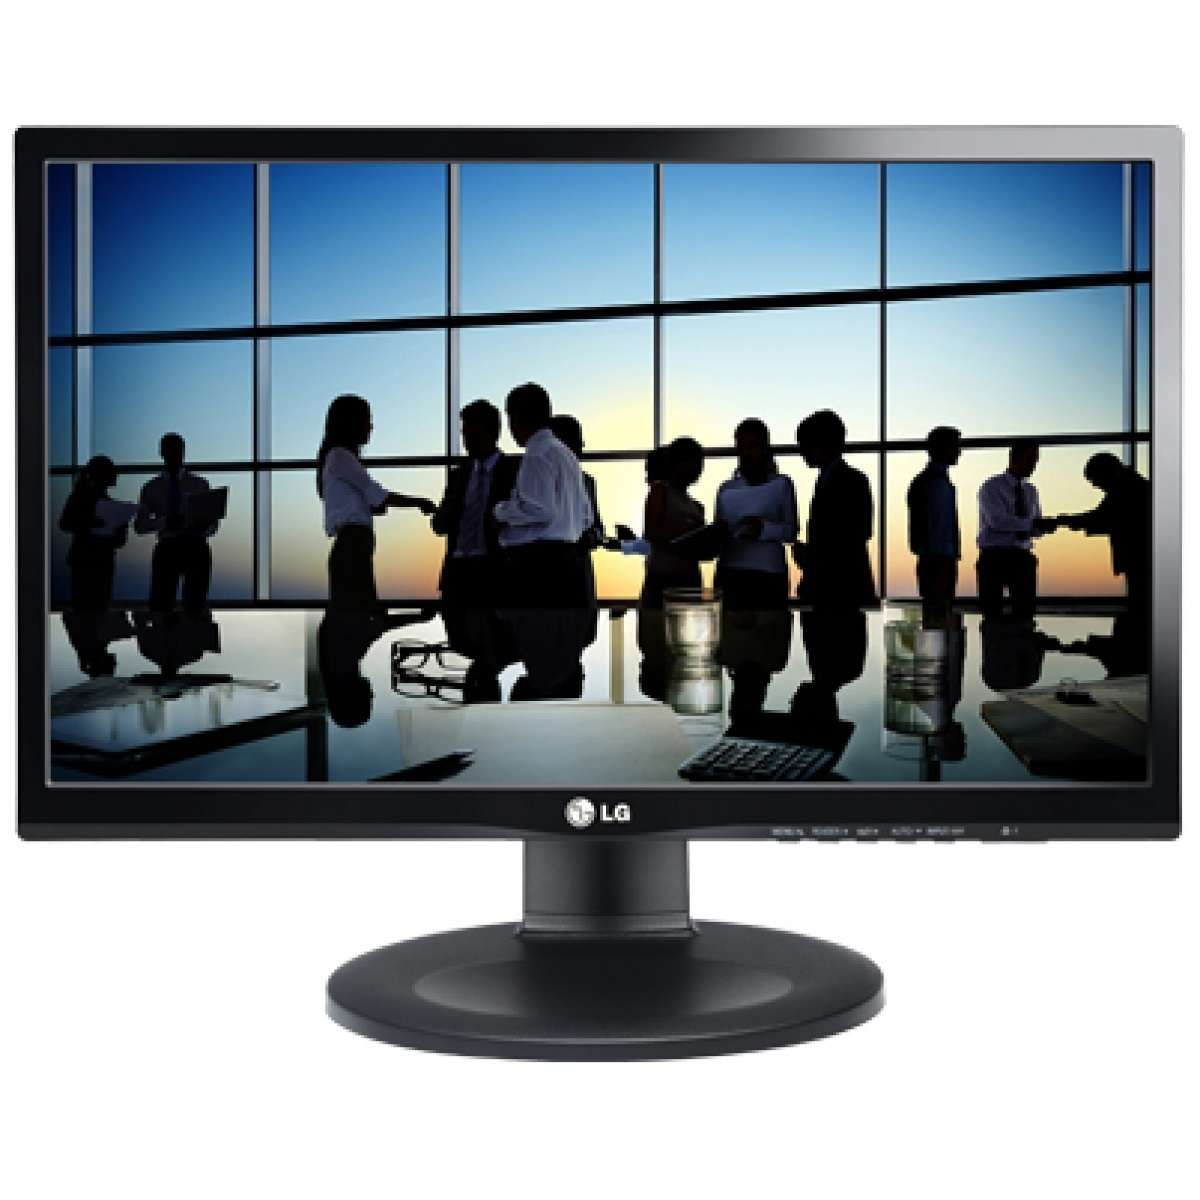 Monitor LG LED 21,5 IPS Full HD, Ajuste de Altura HDMI, DVI 22MP55PQ-B